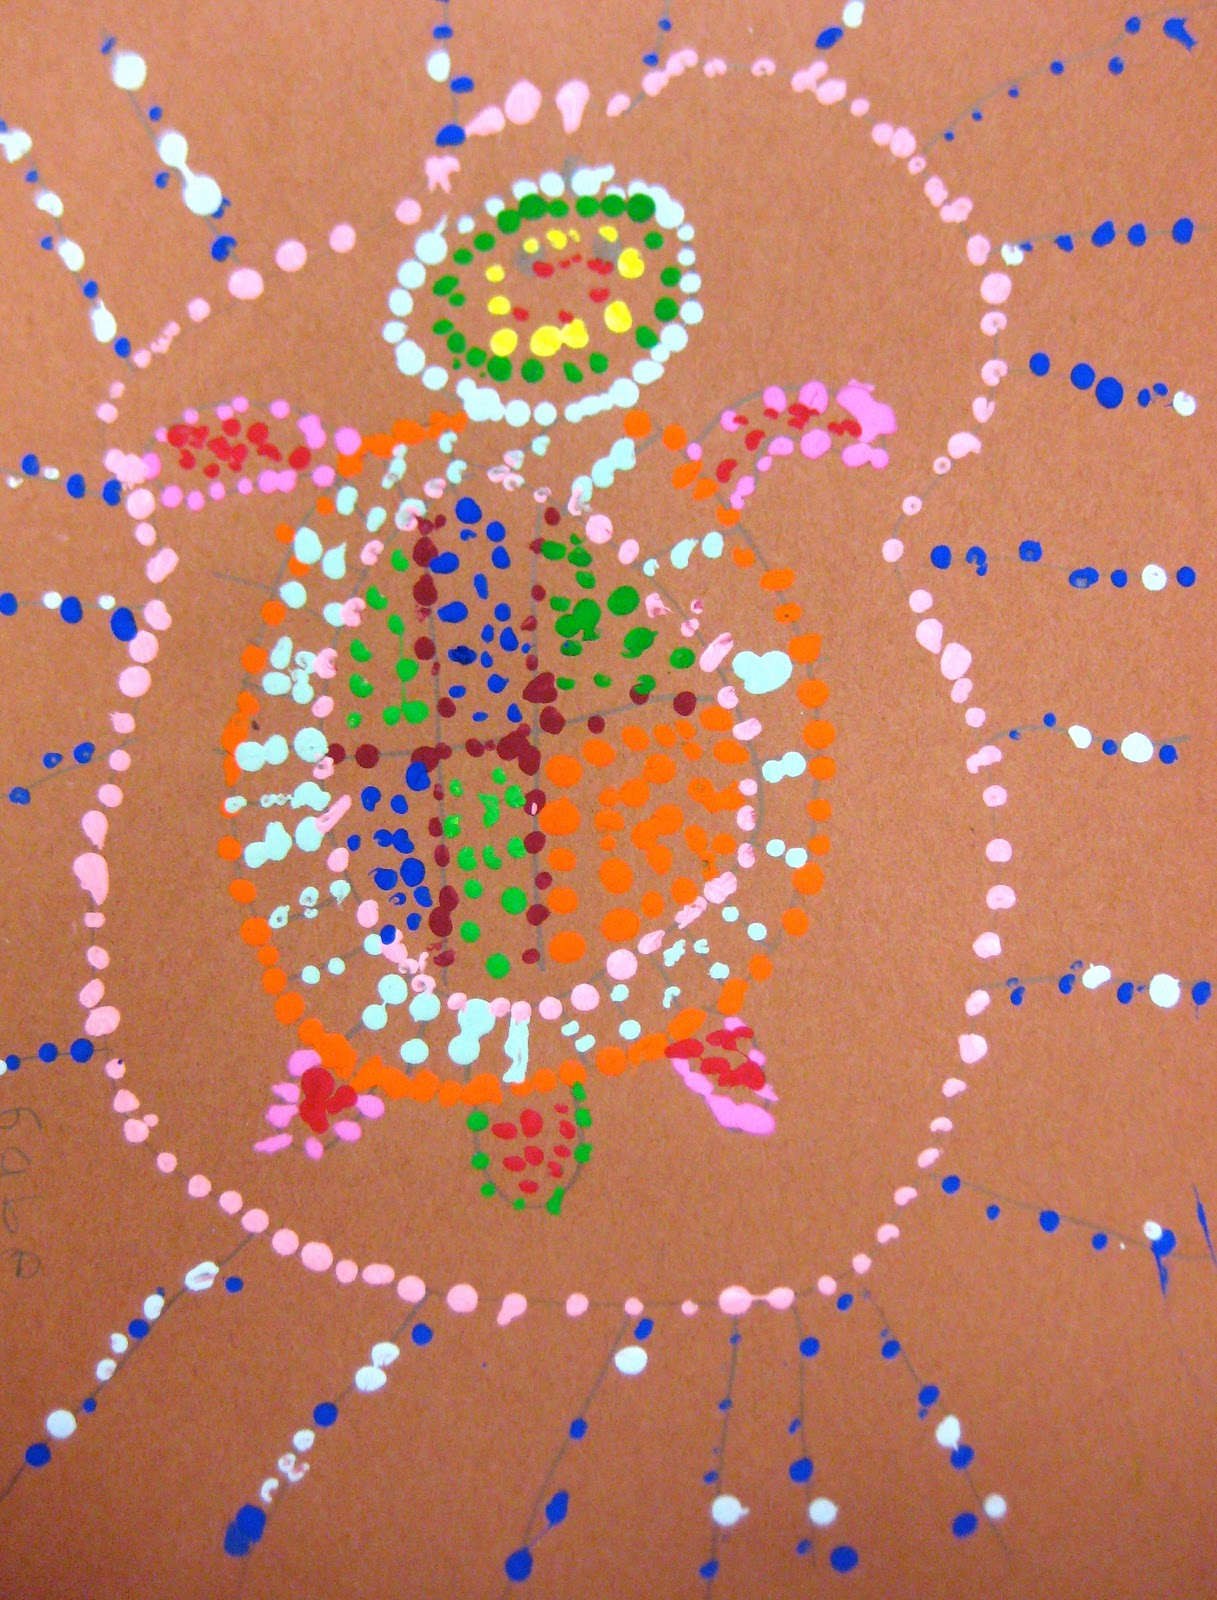 Aboriginal Dot Paintings Animals http://experimentsinarteducation.blogspot.com/2011/12/aboriginal-dot-painting.html